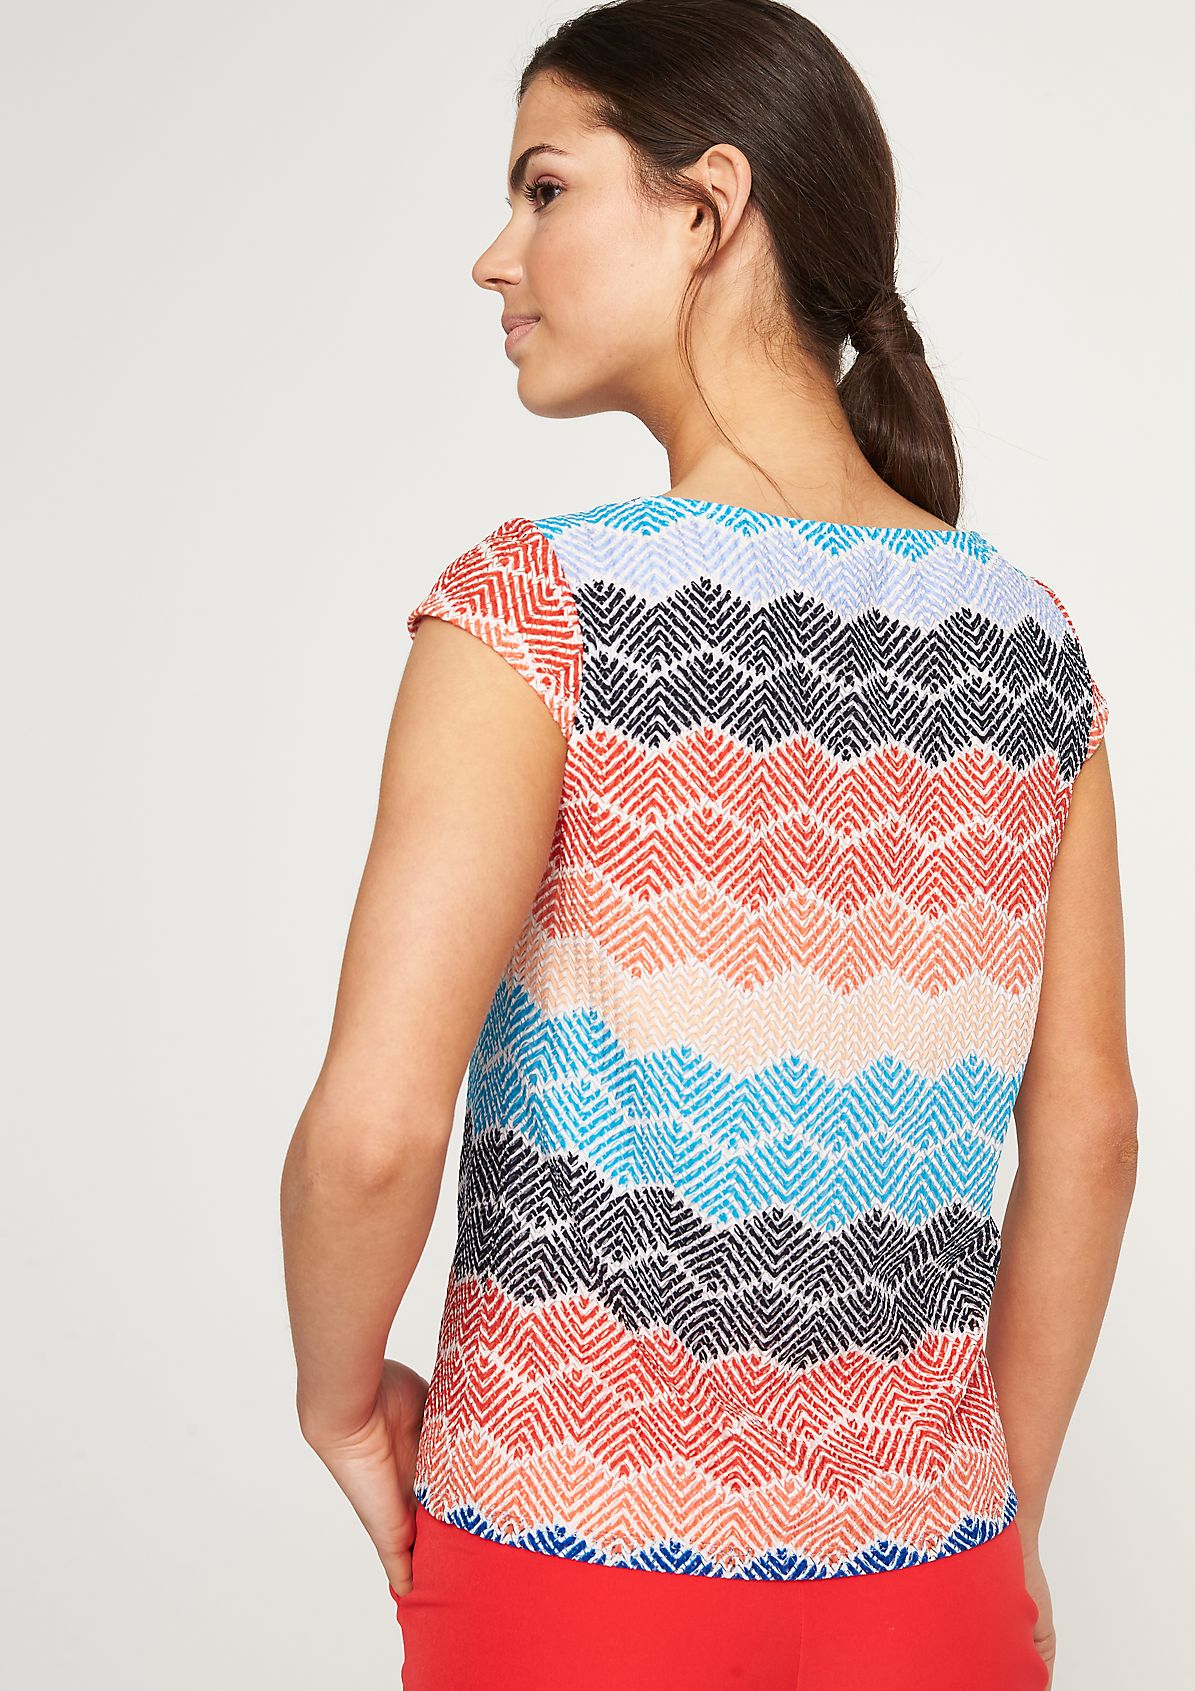 Top with a textured pattern from comma